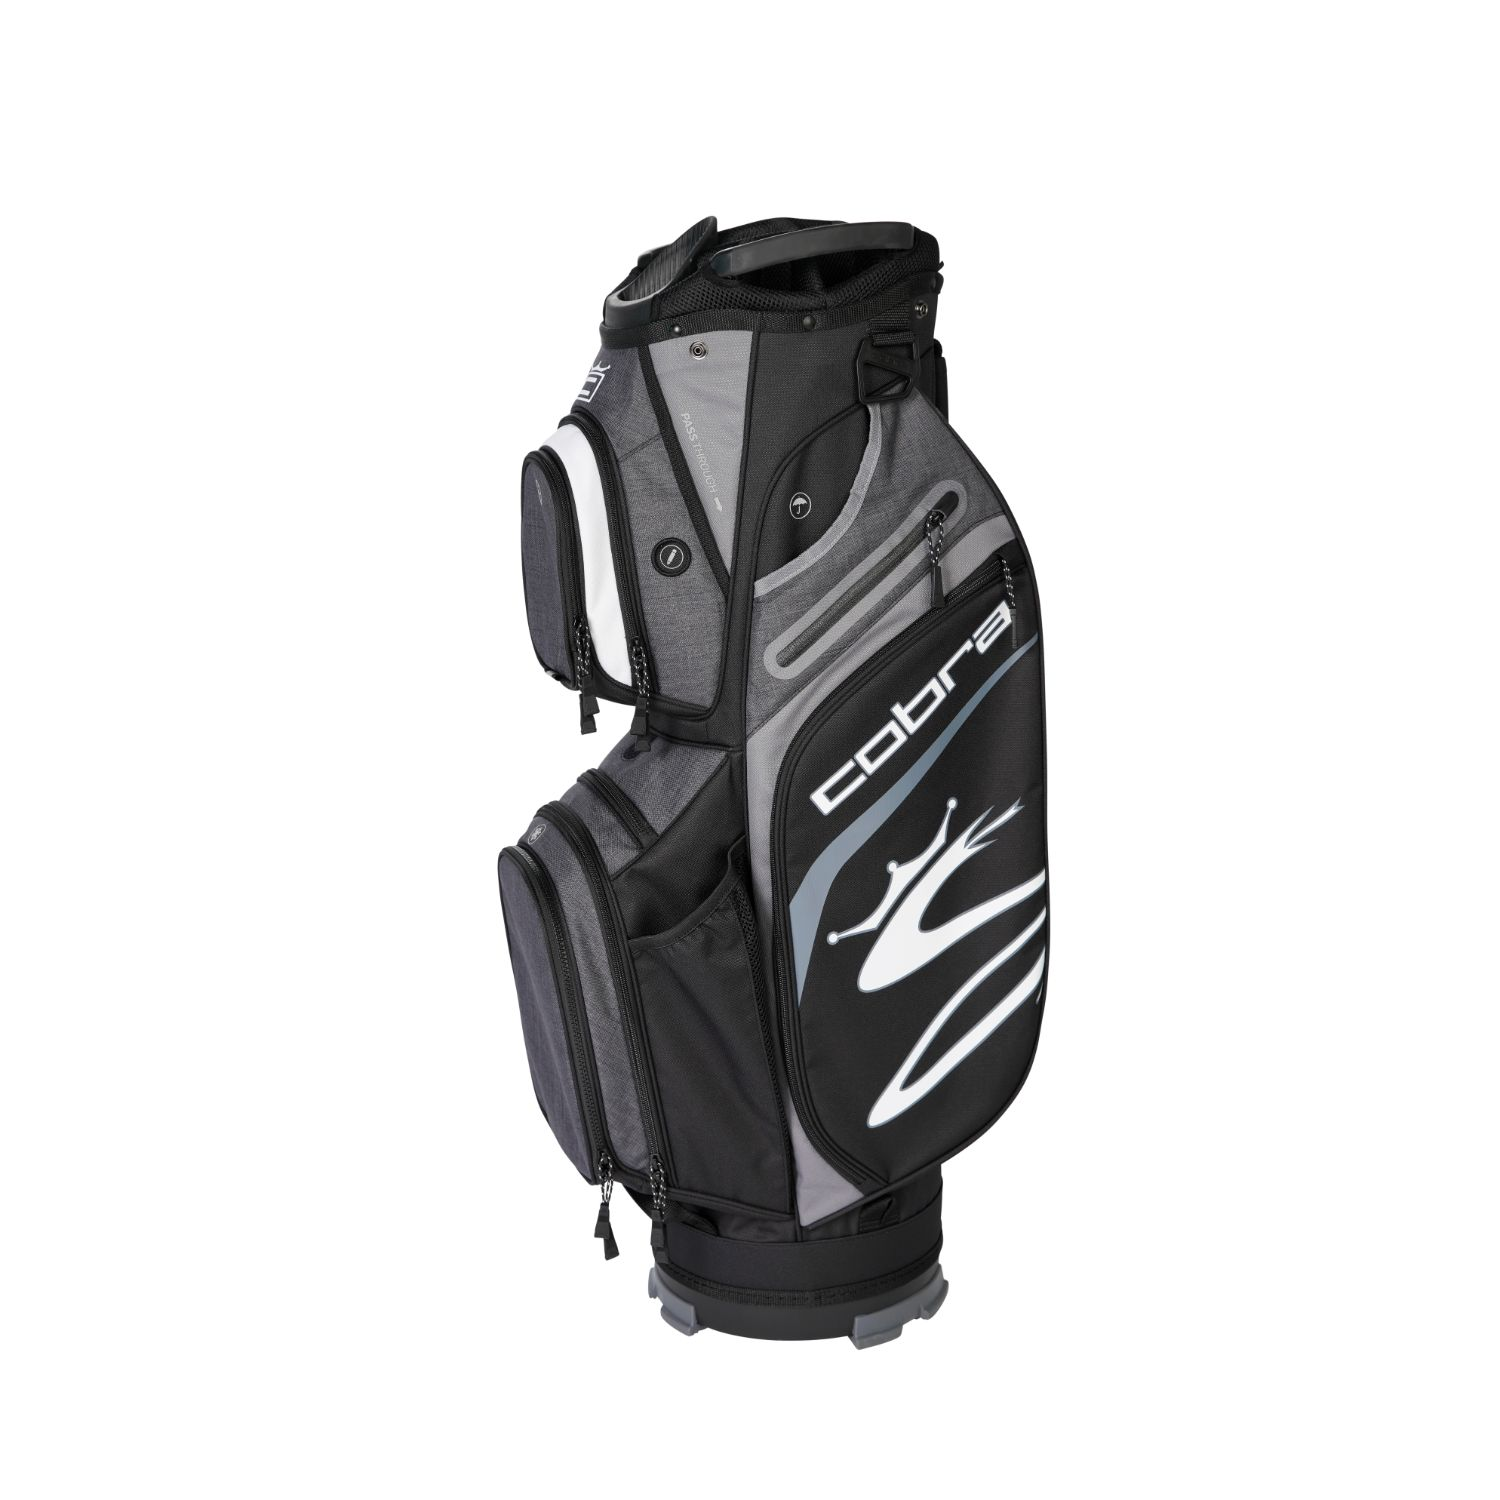 Cobra Golf 2020 Ultralight Cart Bag Black